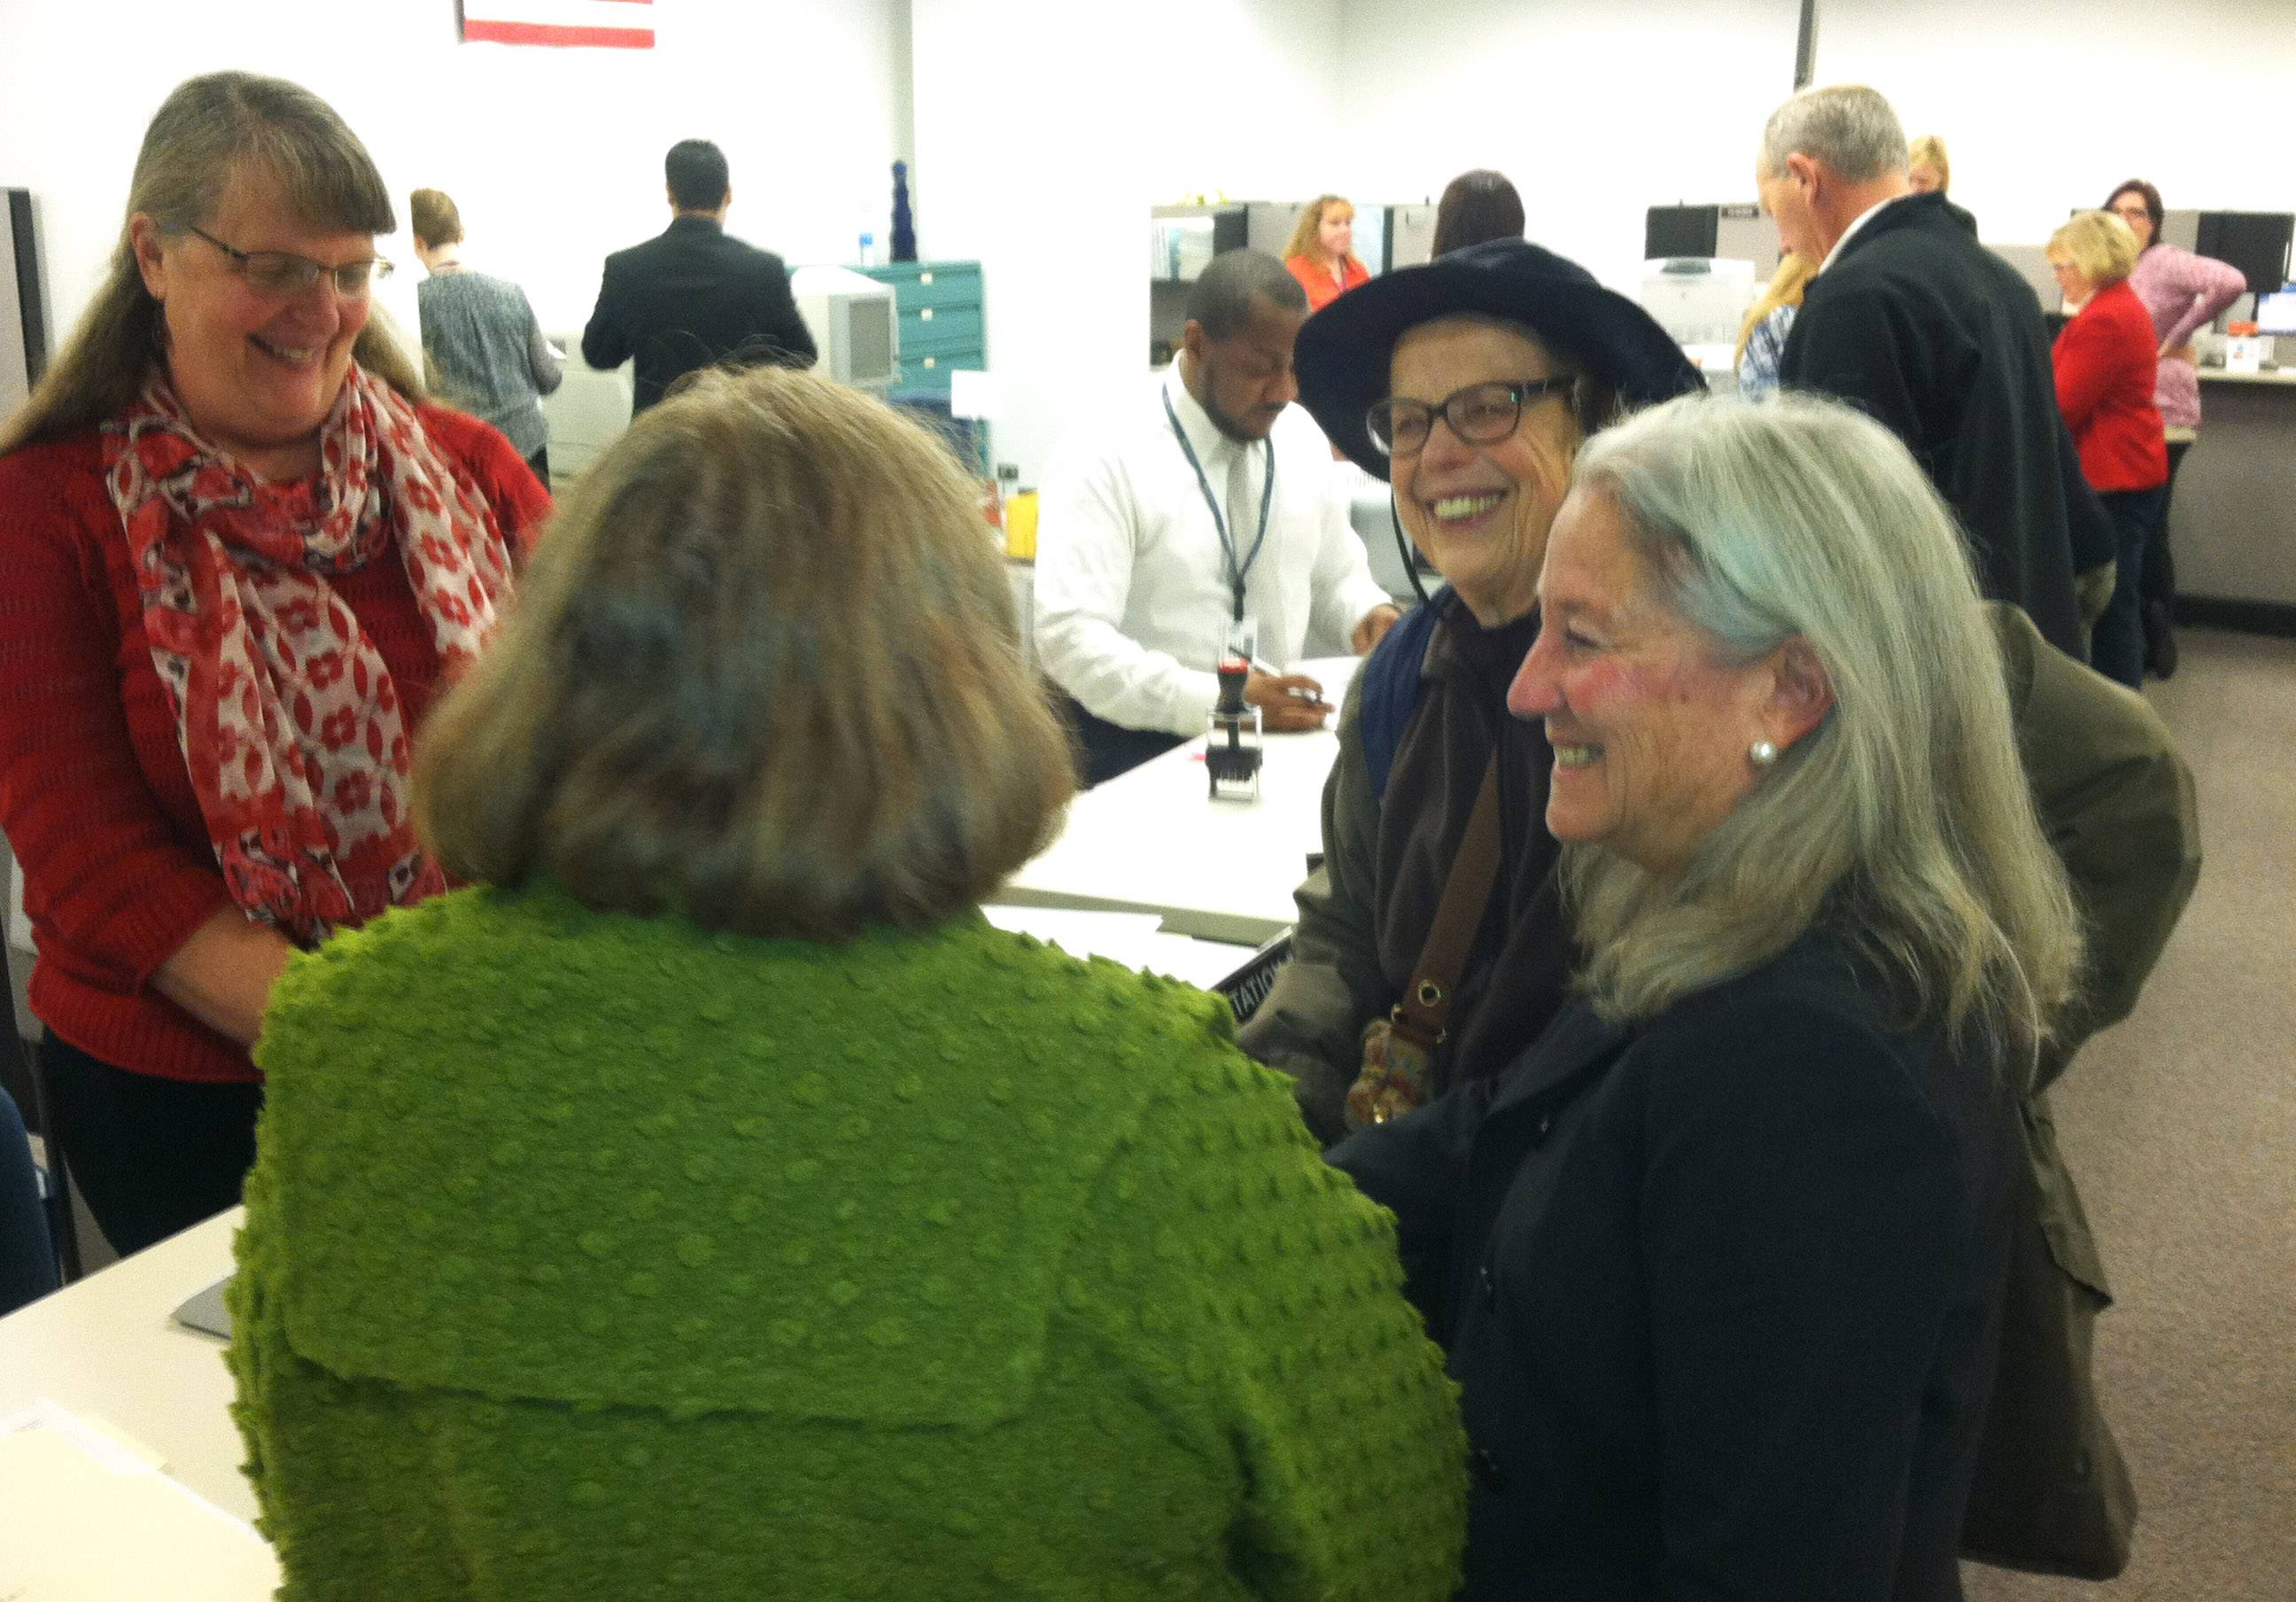 Lake County Clerk Carla Wyckoff, right, during Monday morning candidate filing process.